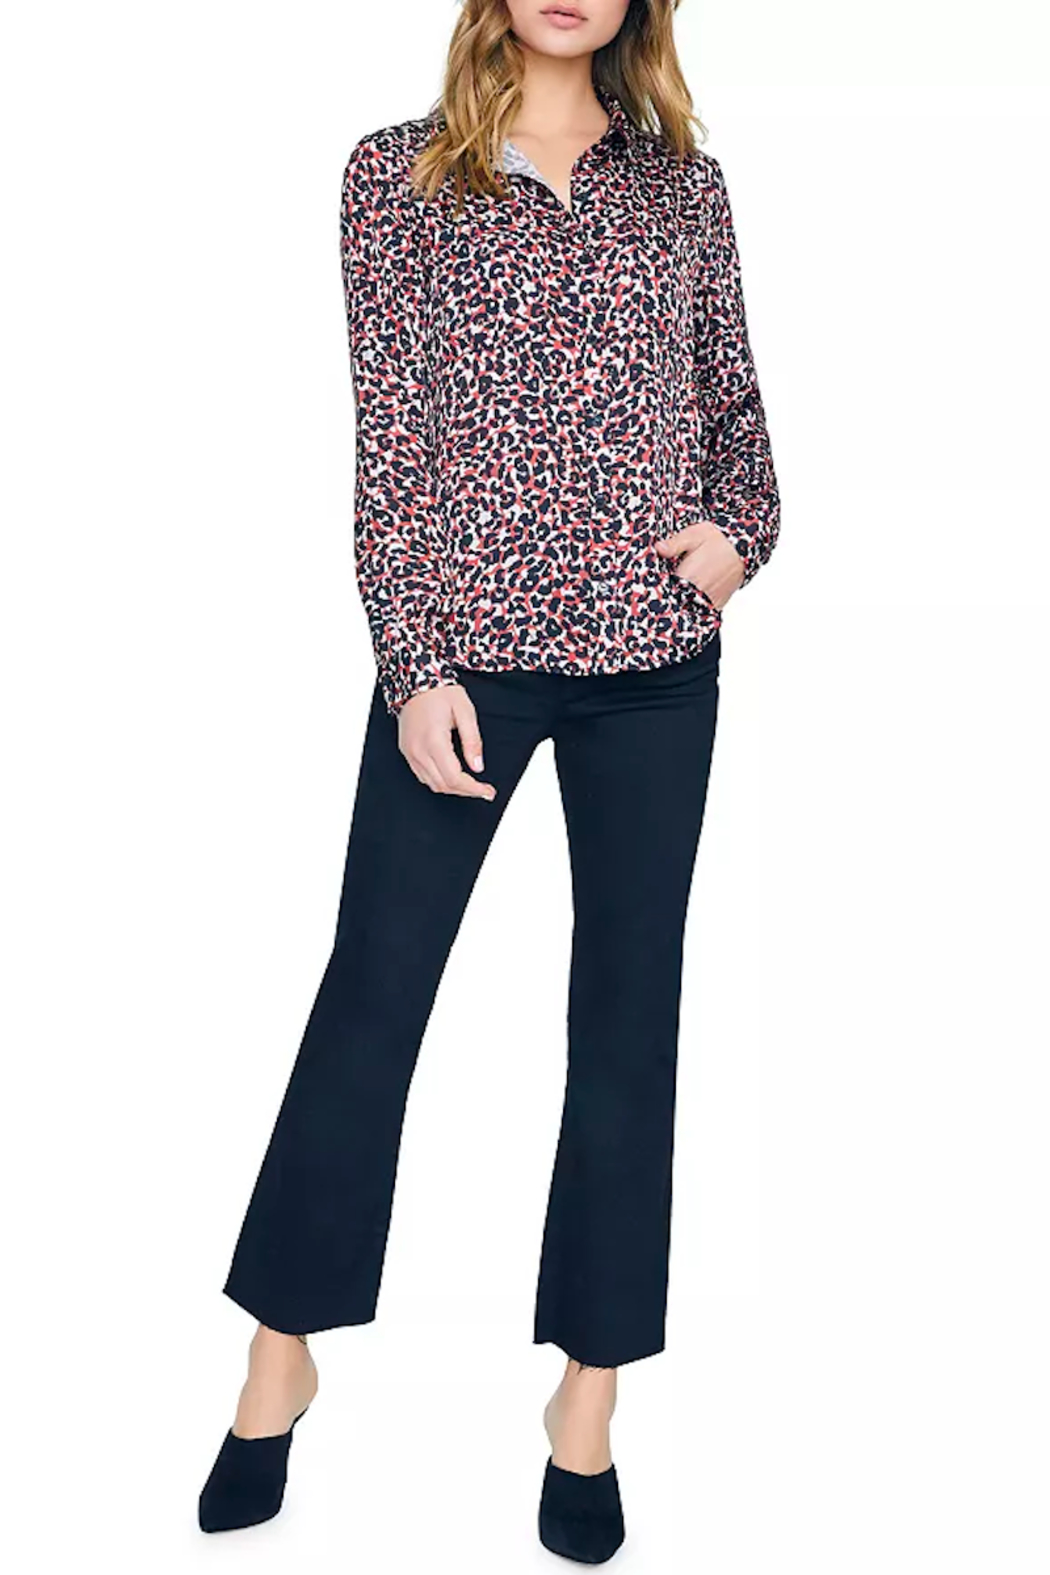 Sanctuary Abstract Animal-Print Blouse - Side Cropped Image